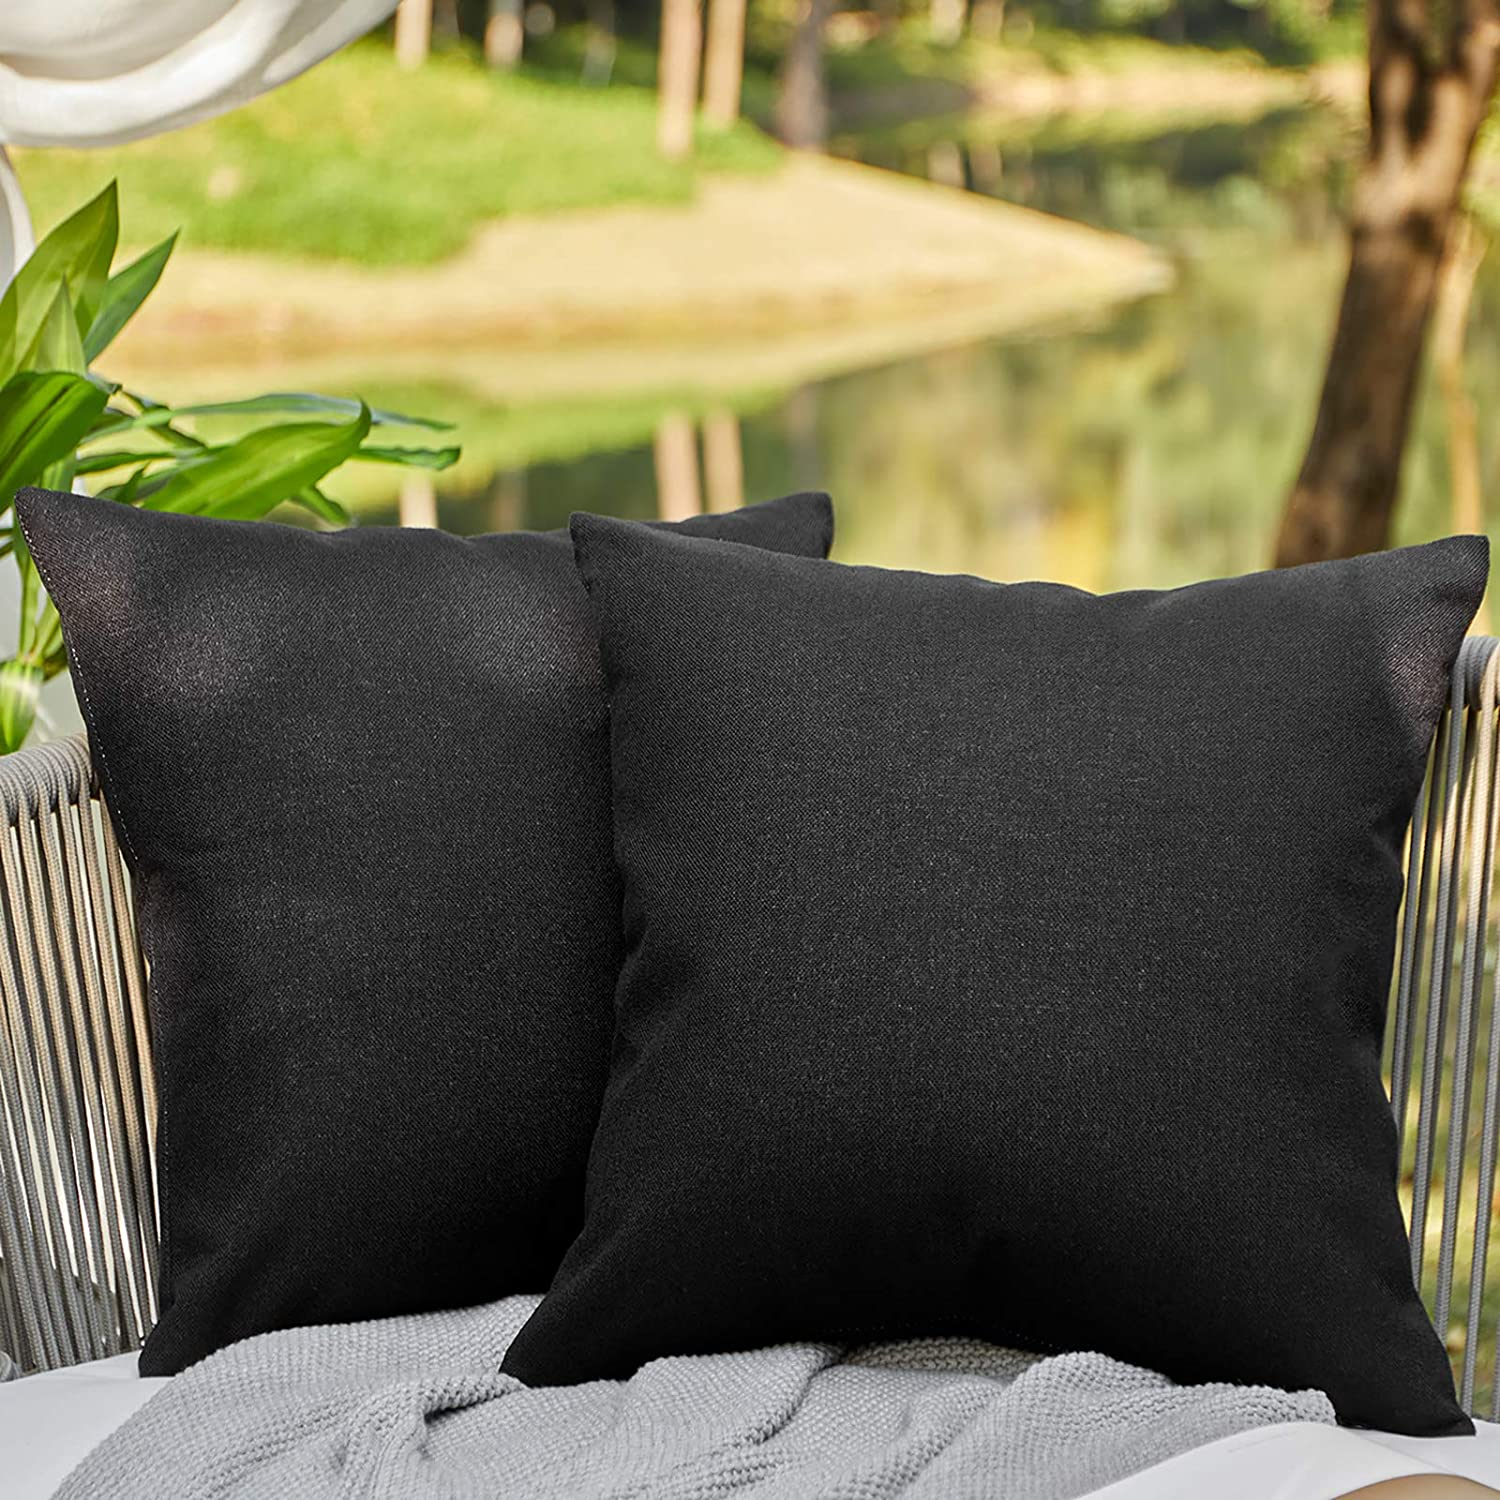 WAYIMPRESS Outdoor Pillows for Patio Furniture Waterproof Pillow Covers Square Garden Cushion Farmhouse Linen Throw Pillow Covers Shell for Patio Tent Couch(18 x 18,Black)